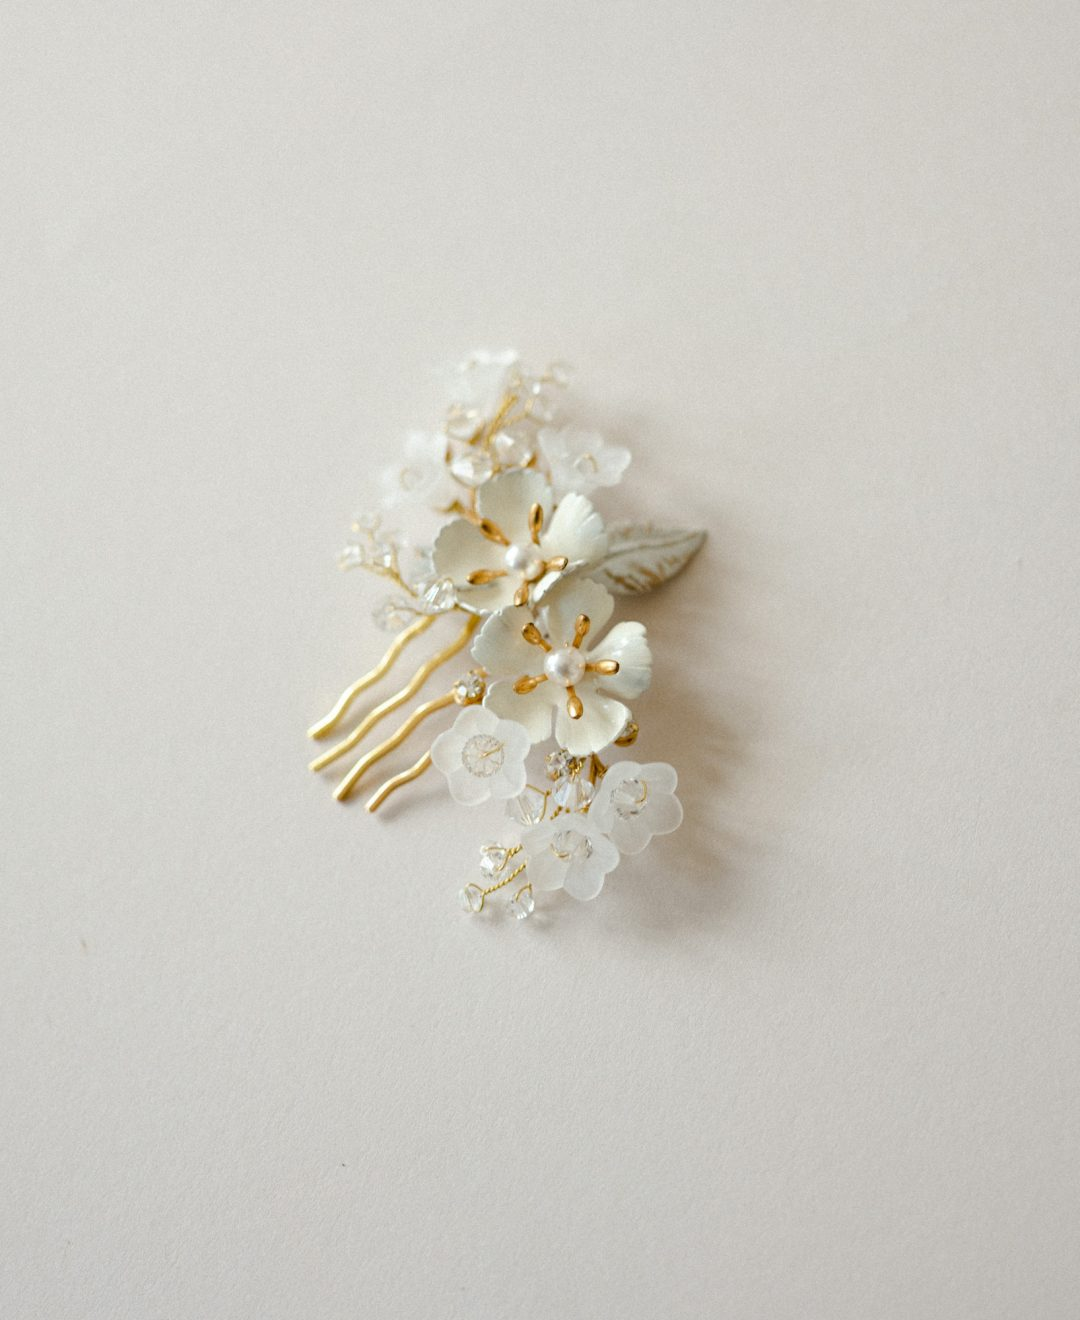 Style 813 - BLOSSOM BRIDAL HAIR PIN by SIBO Designs Couture www.sibodesigns.com